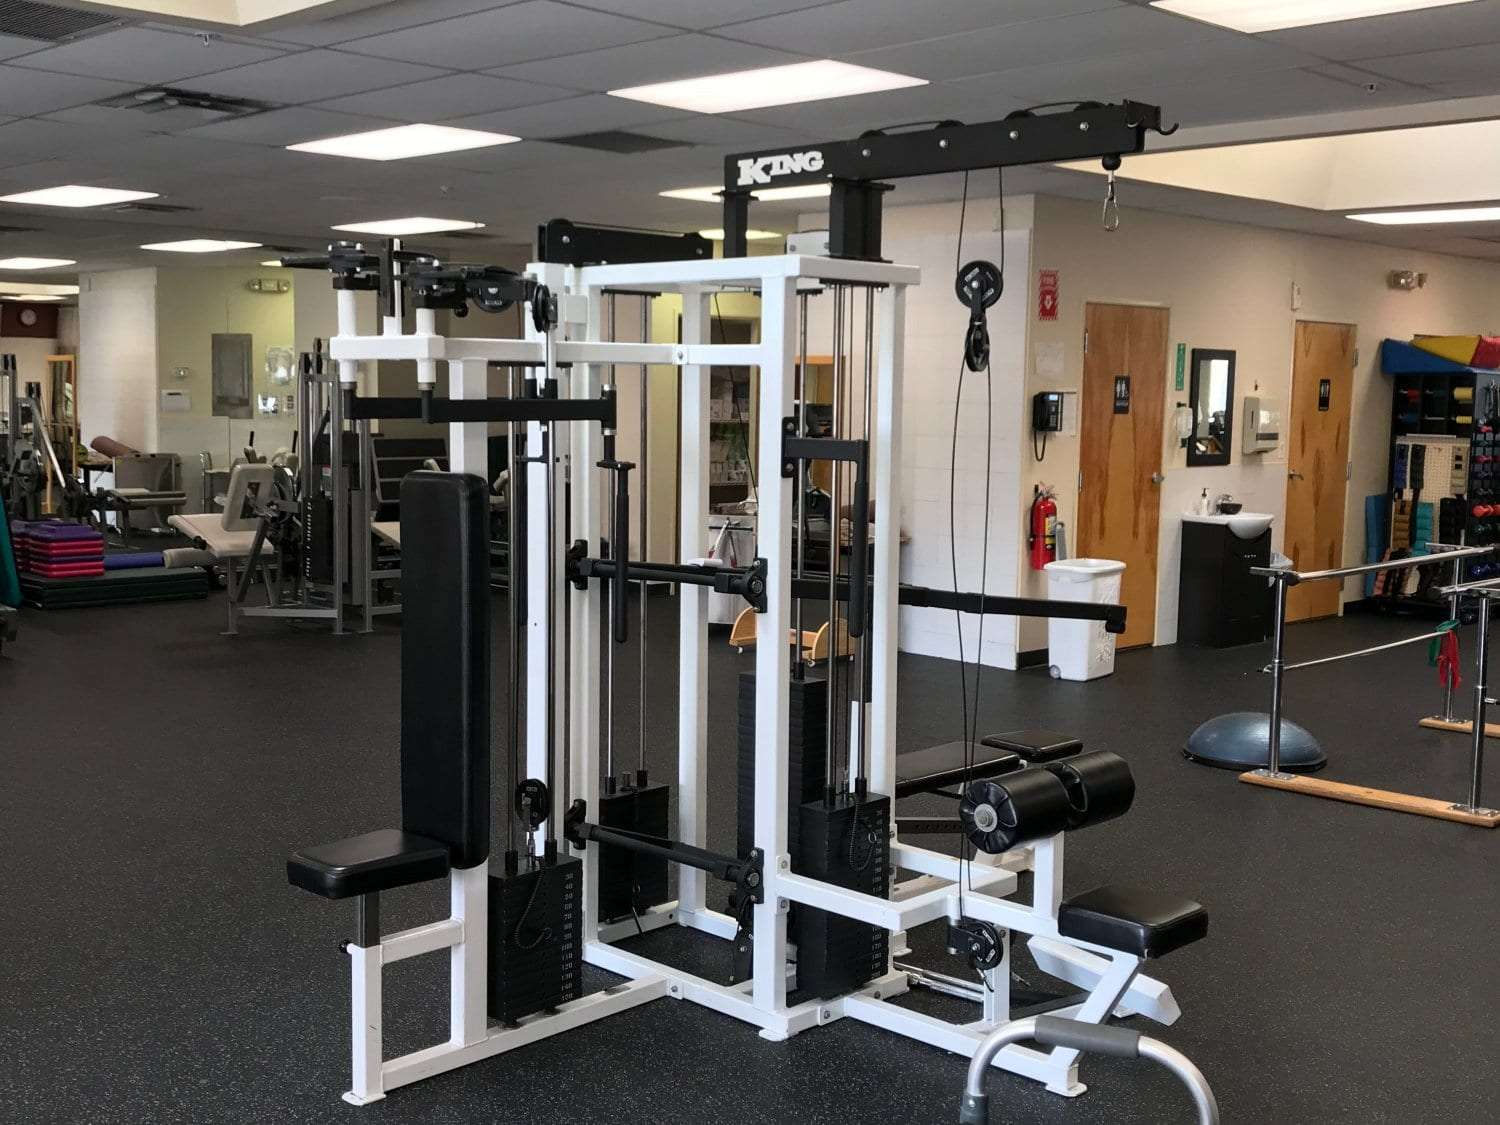 An image of exercise equipment at our physical therapy clinic in Cliffside Park, New Jersey.